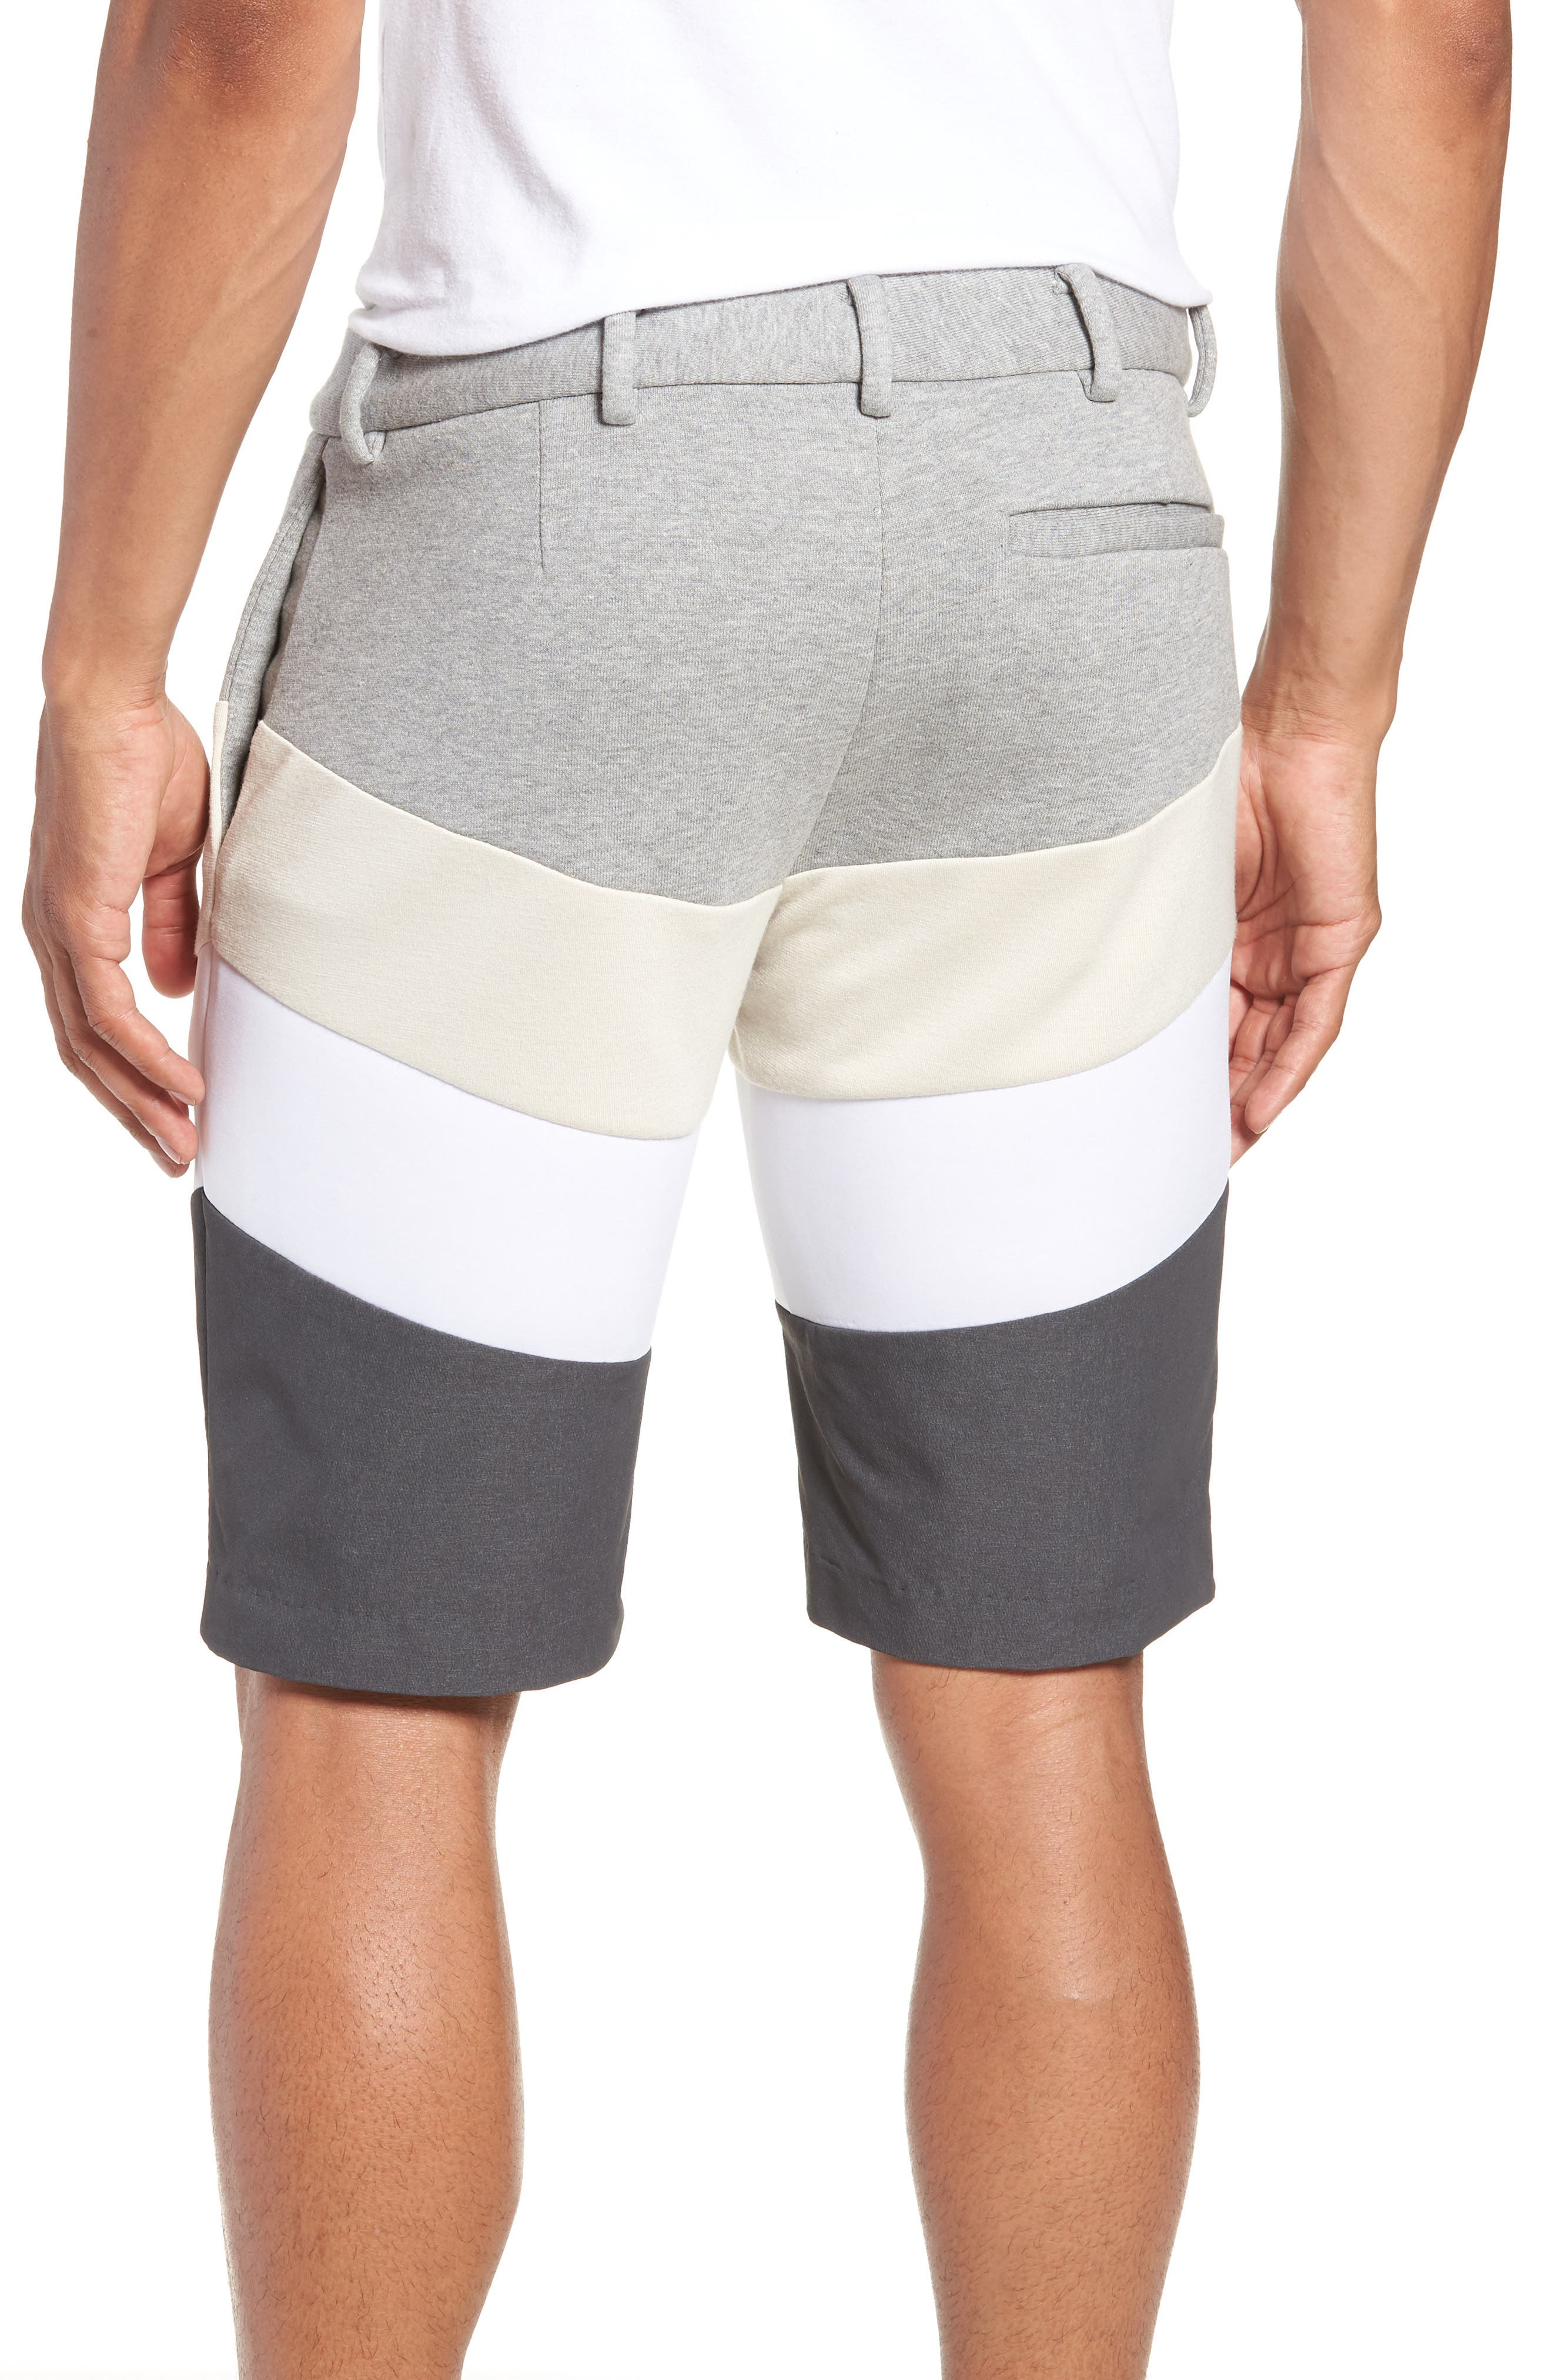 Chevron Colorblock Shorts,                             Alternate thumbnail 2, color,                             HEATHER GREY